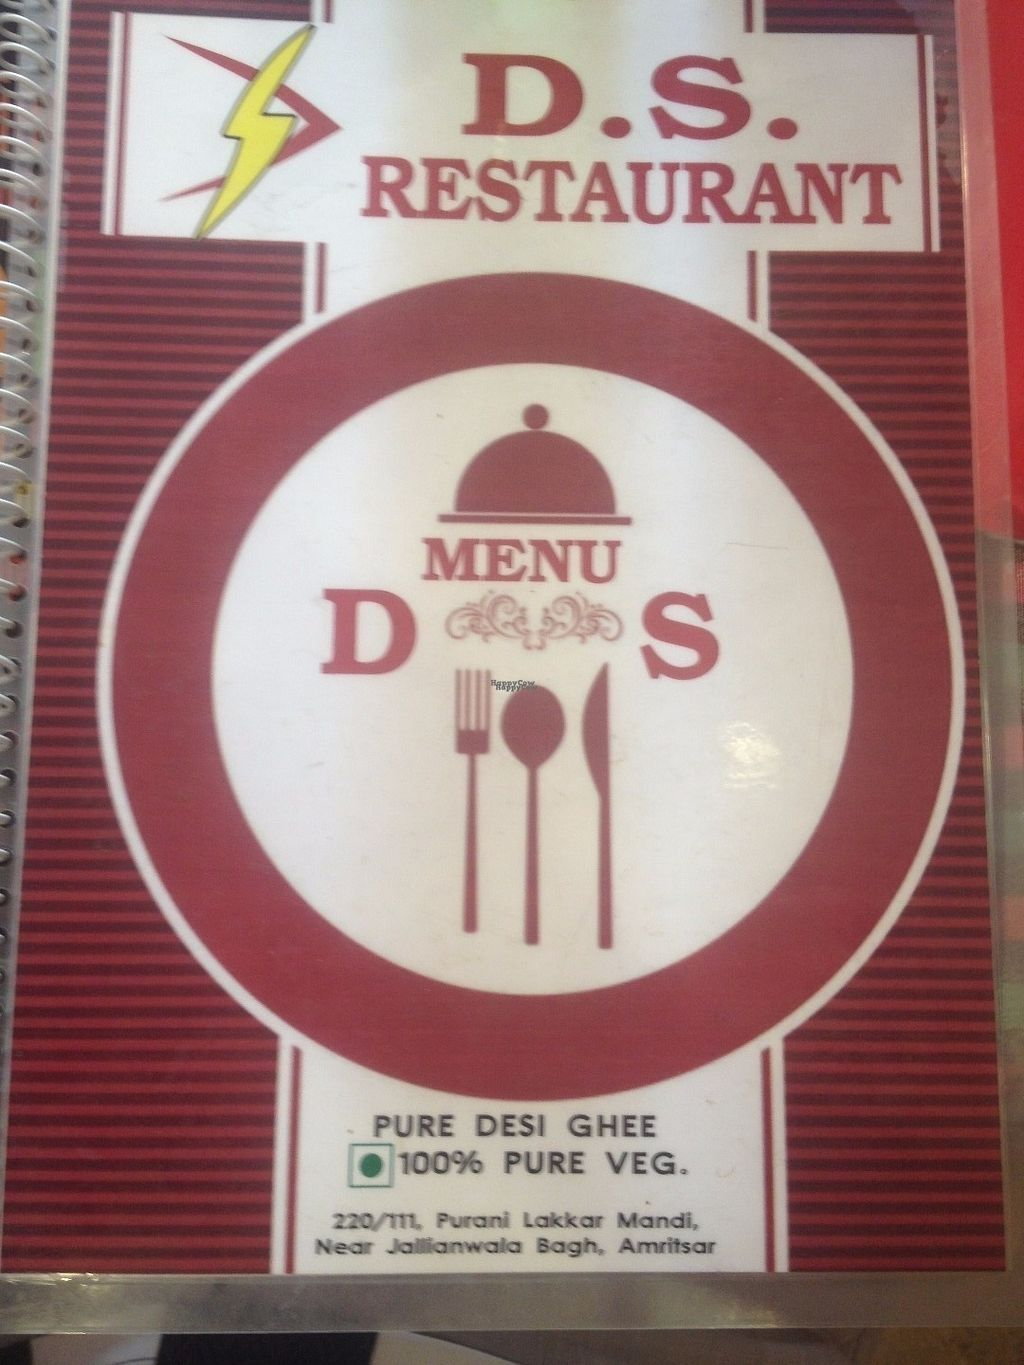 """Photo of D.S. Restaurant  by <a href=""""/members/profile/vegan_ryan"""">vegan_ryan</a> <br/>Menu cover <br/> October 10, 2016  - <a href='/contact/abuse/image/81259/181189'>Report</a>"""